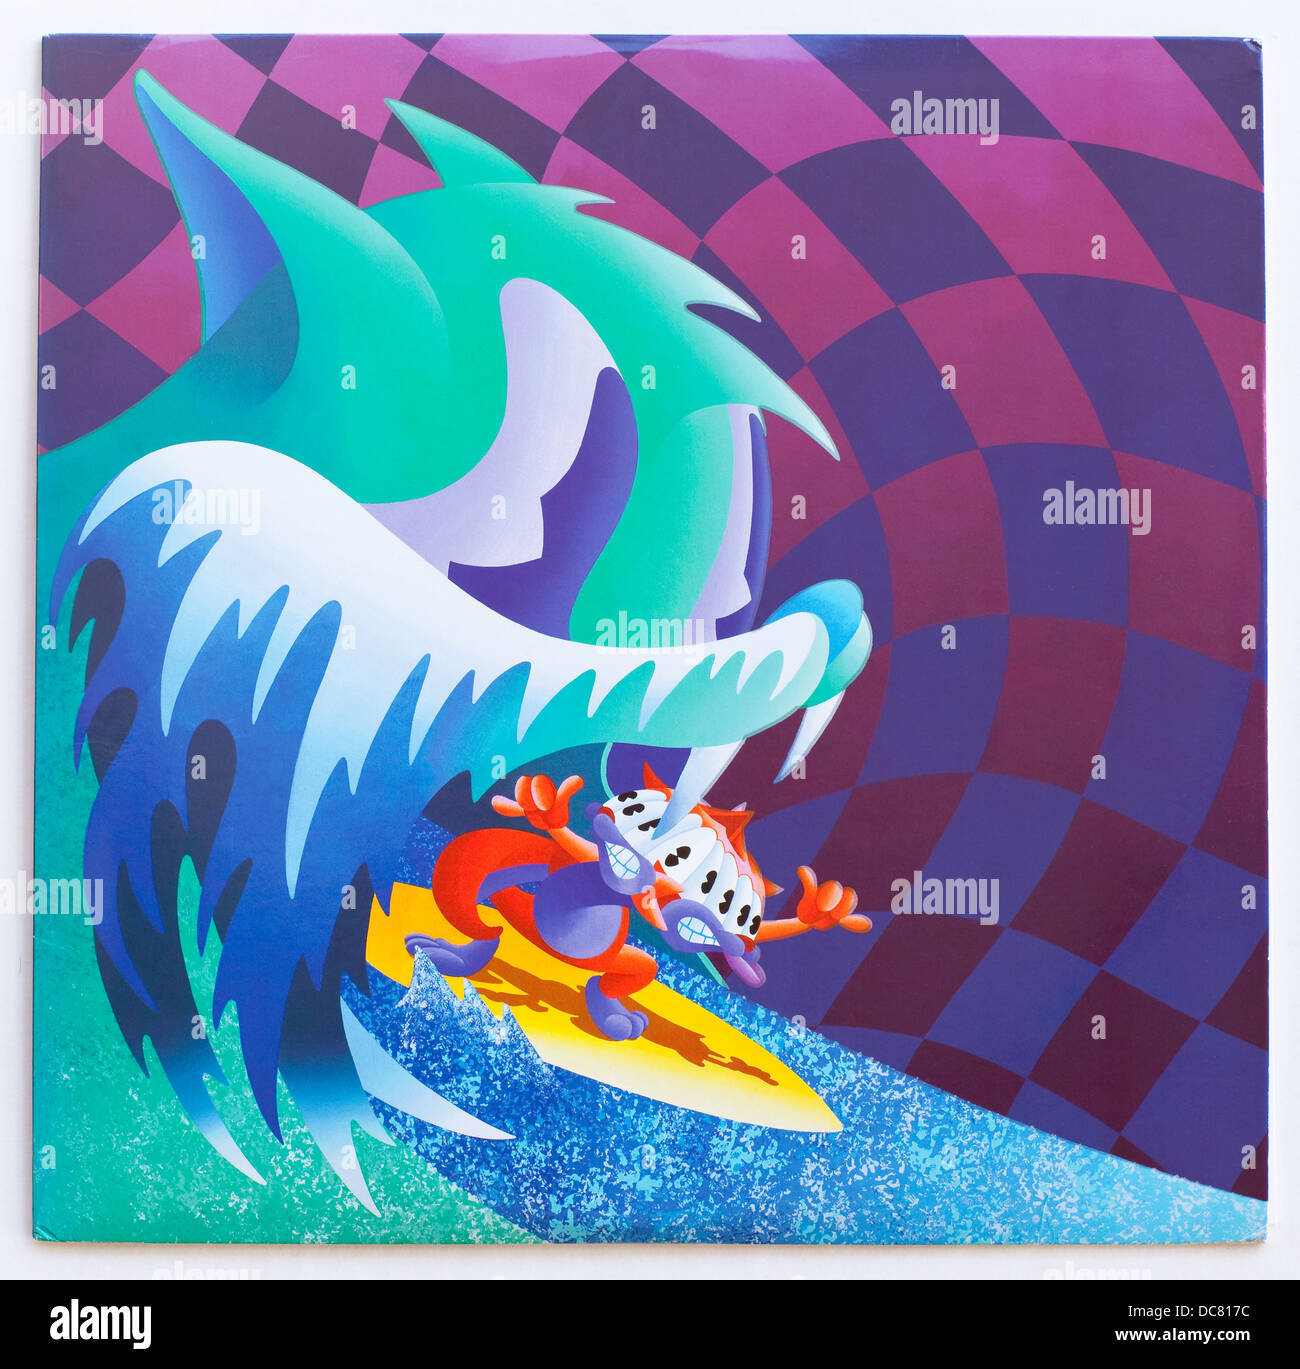 MGMT - Congratulations, 2010 album on Columbia Records - Stock Image